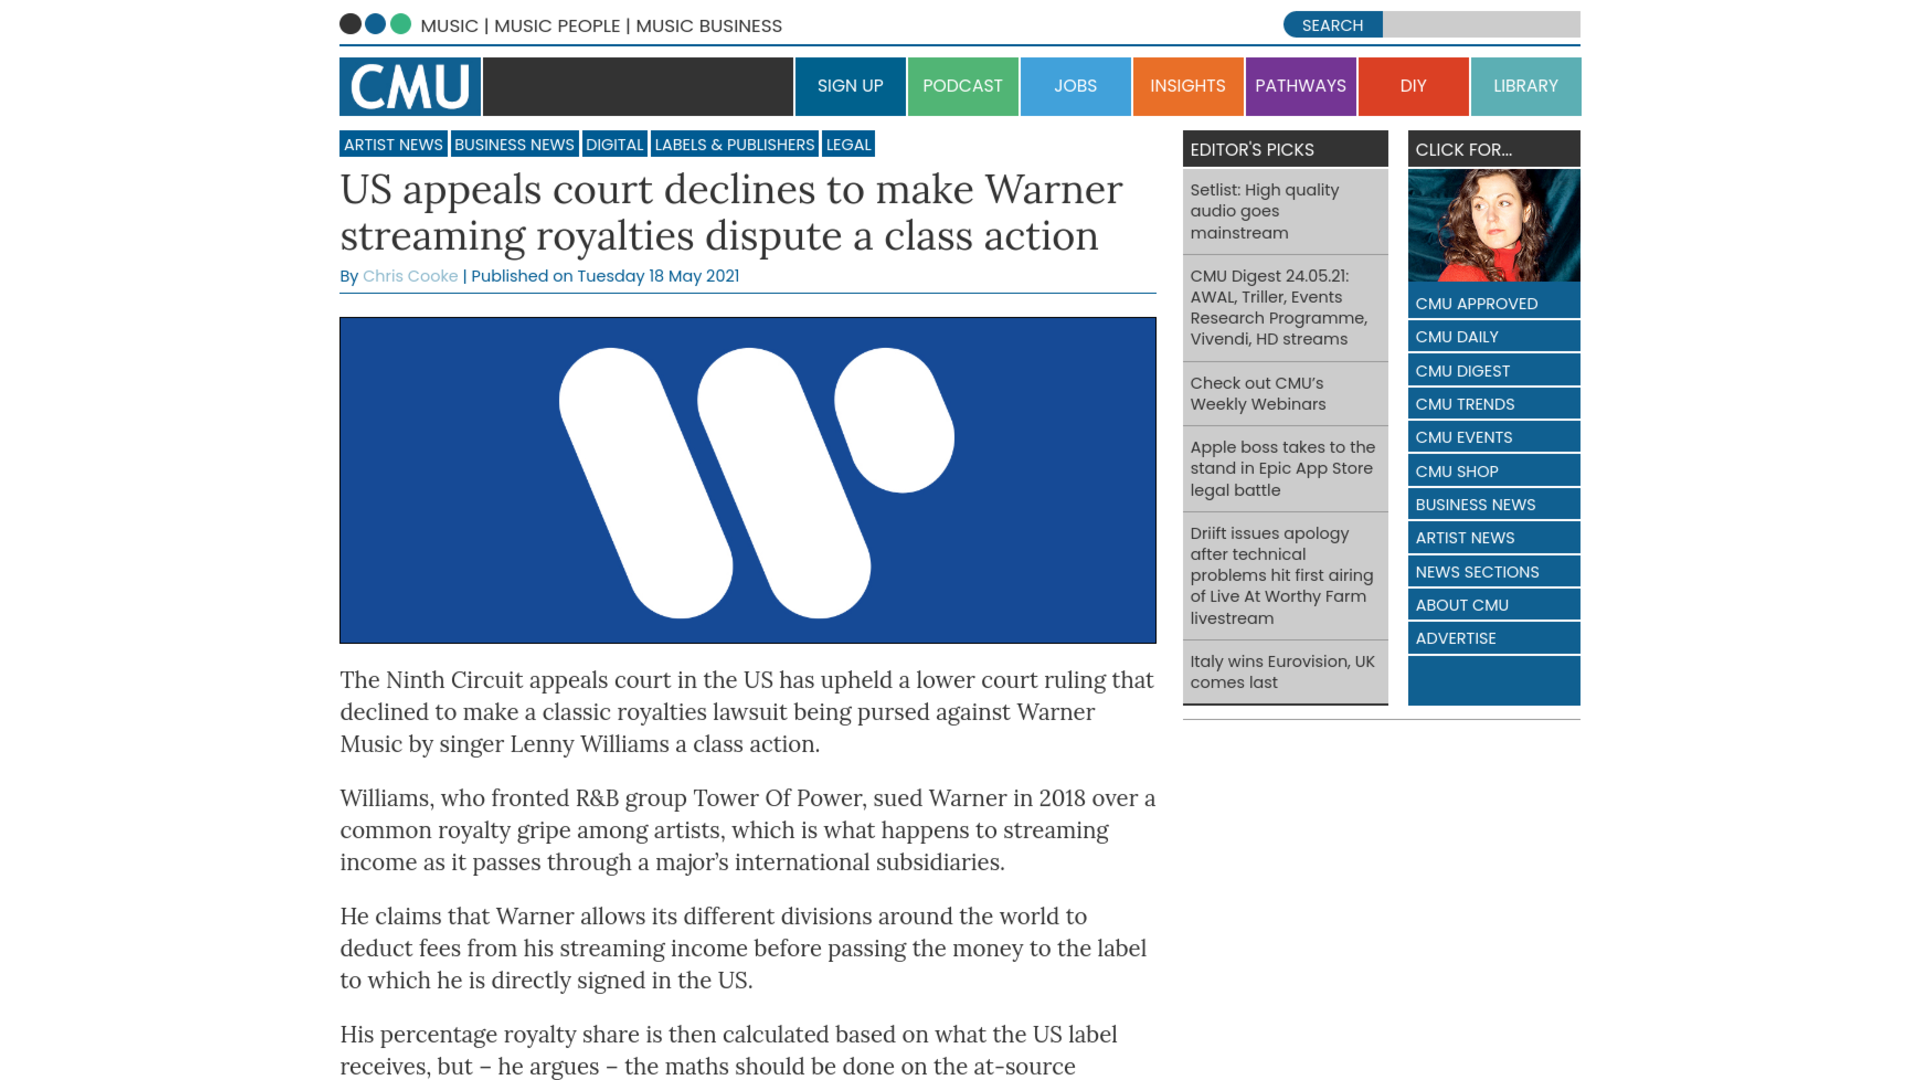 Fairness Rocks News US appeals court declines to make Warner streaming royalties dispute a class action